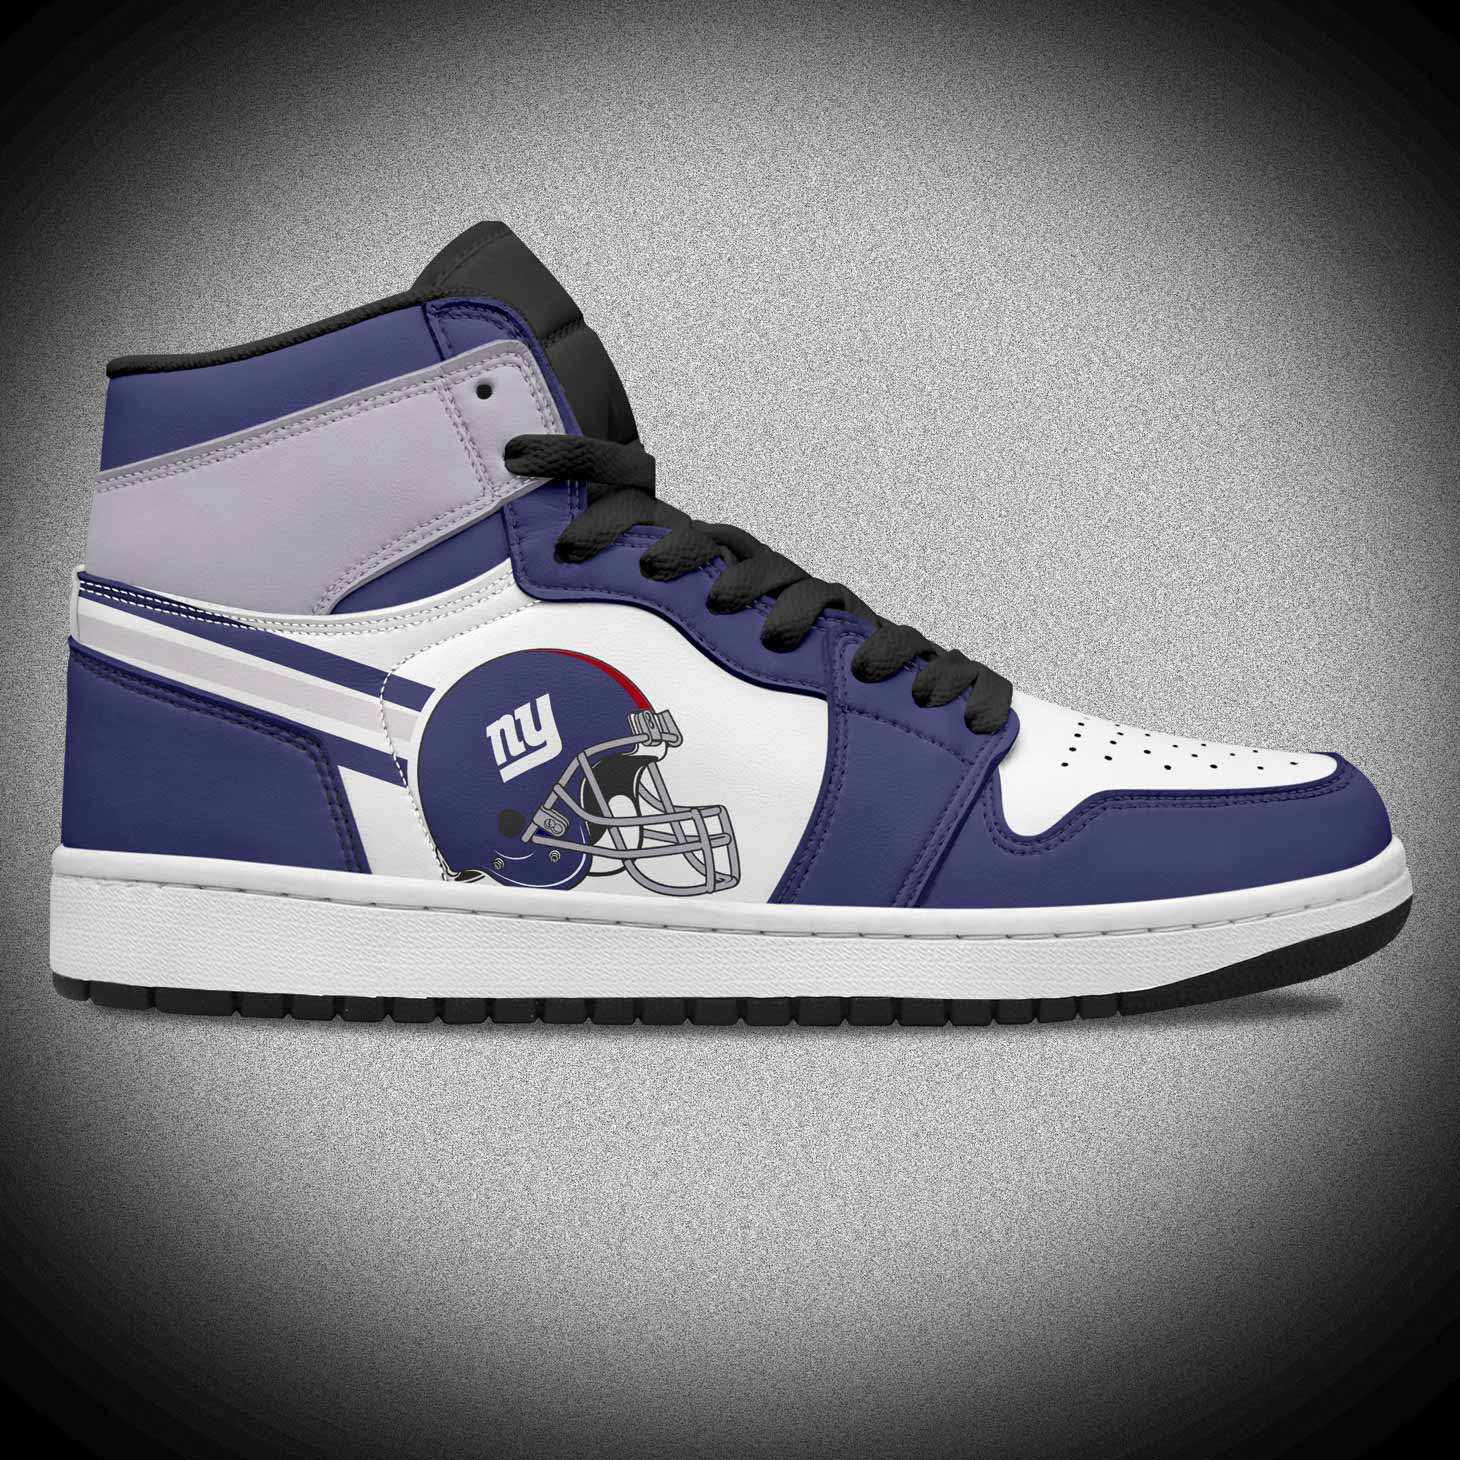 Genuine Leather High Top Fashion Sneakers for Men like Jordan